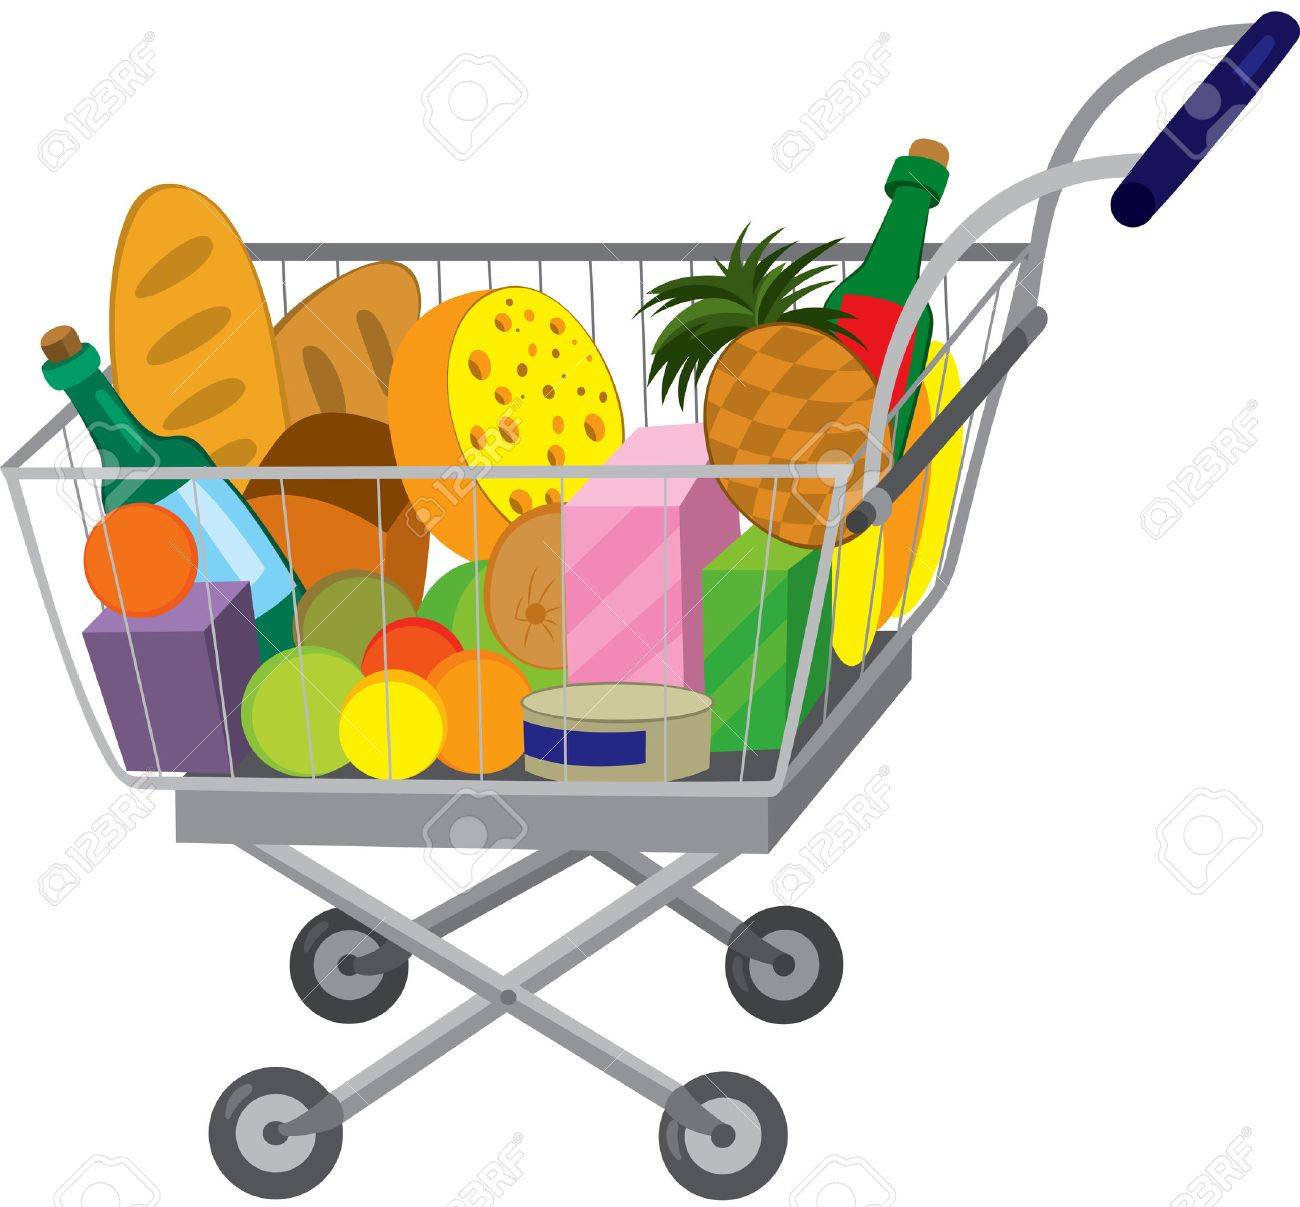 illustration of cartoon shopping cart full of groceries isolated on rh se 123rf com Grocery Bag Clip Art Grocery Store Clip Art